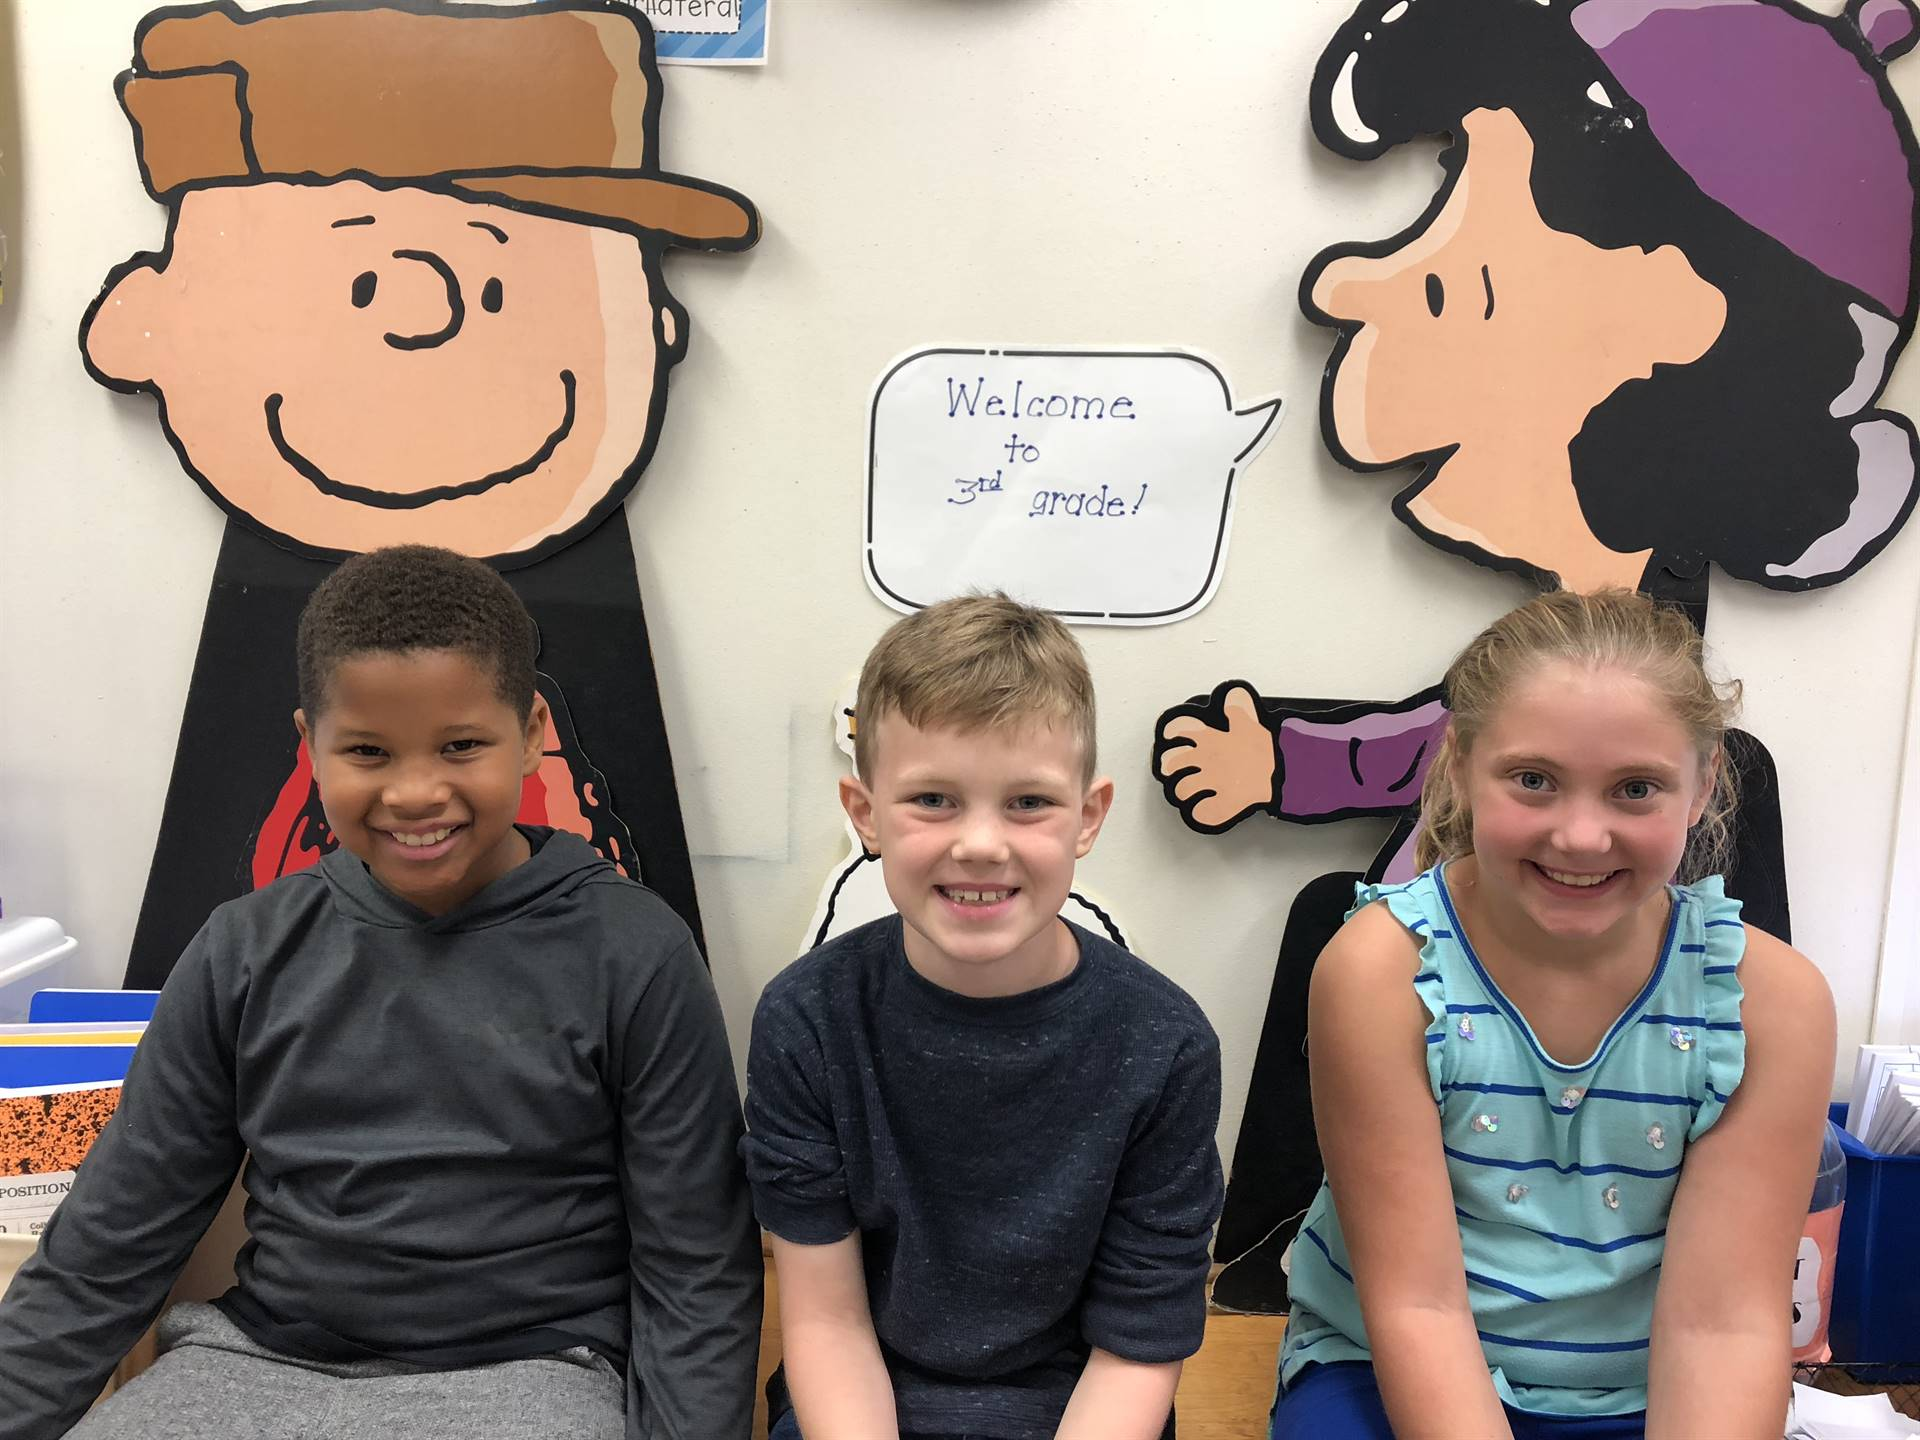 Students in Mrs. Adkinson's class happy to be at school